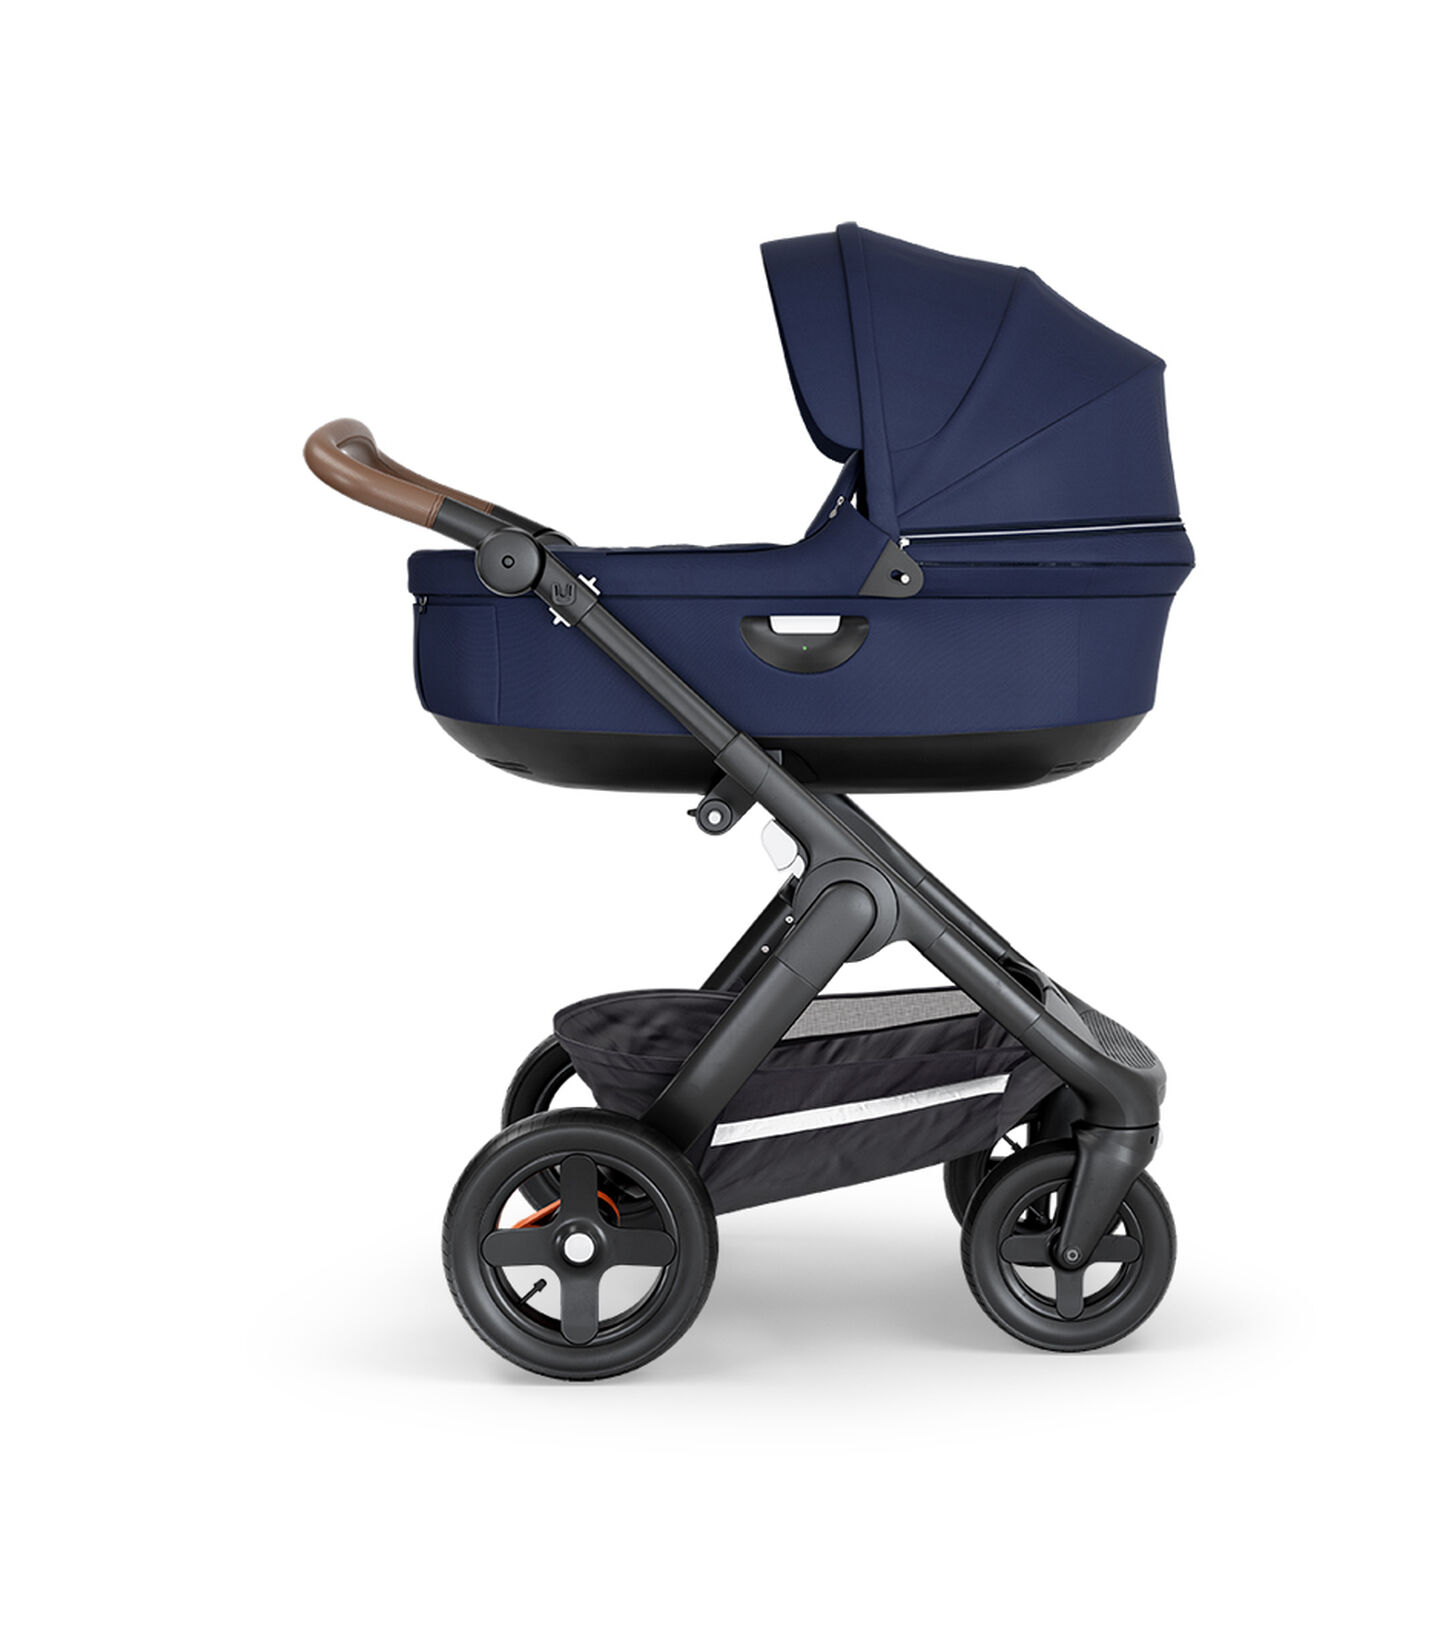 Stokke® Trailz™ with Black Chassis, Brown Leatherette and Terrain Wheels. Stokke® Stroller Carry Cot, Deep Blue.